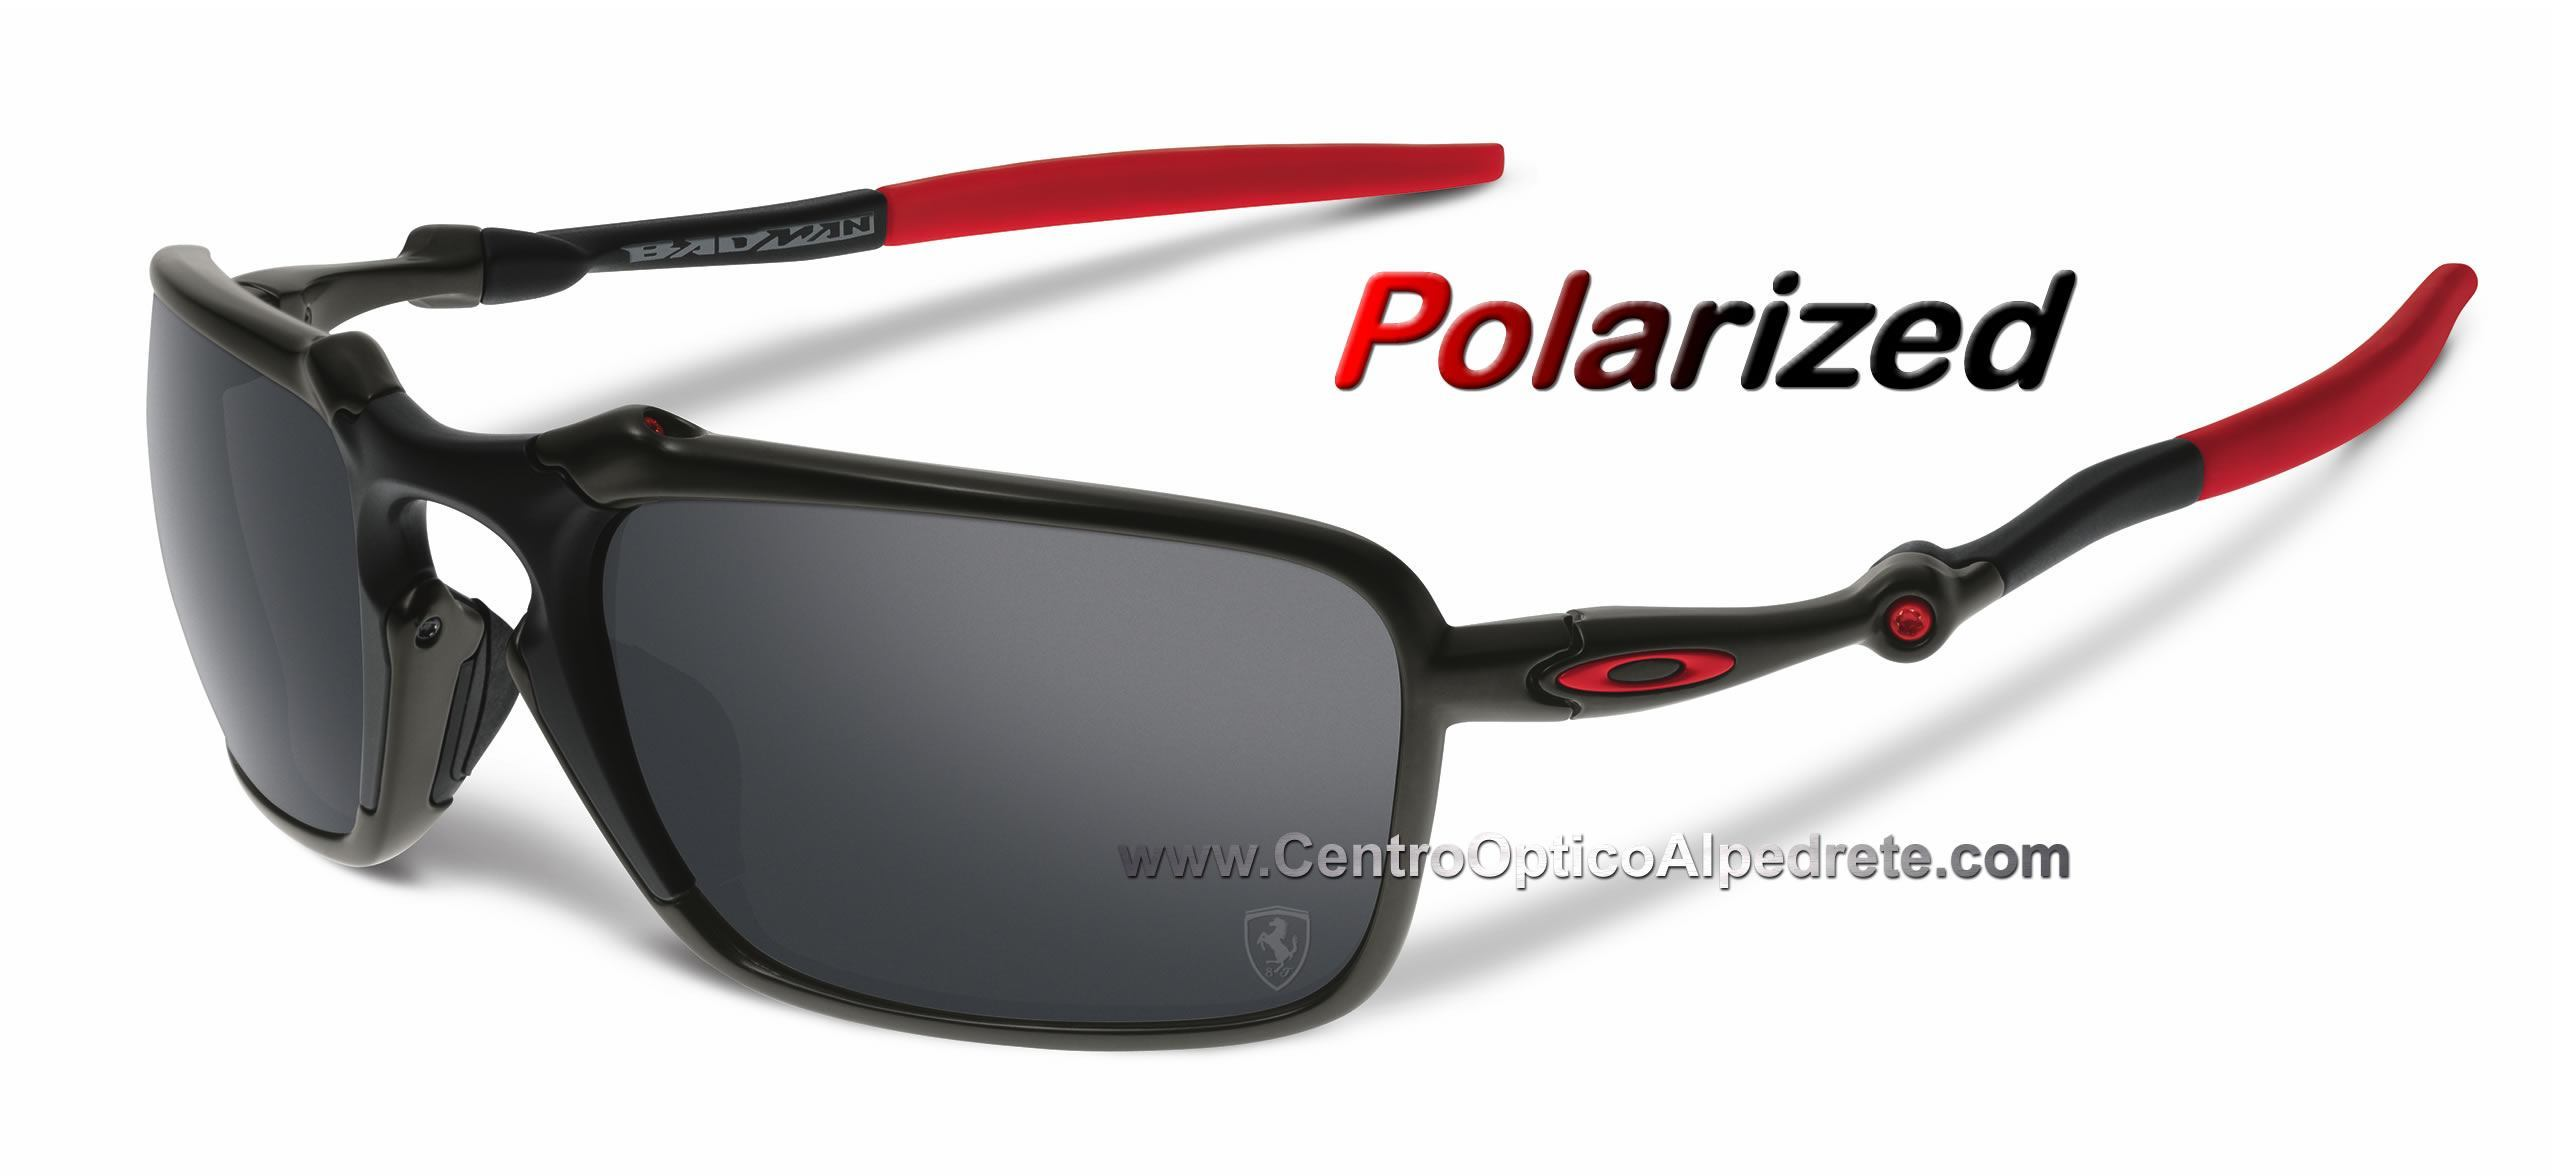 726b5c2856 Oakley BadMan Dark Carbon / Black Iridium Polarized (OO6020-07) Edicion  Ferrari